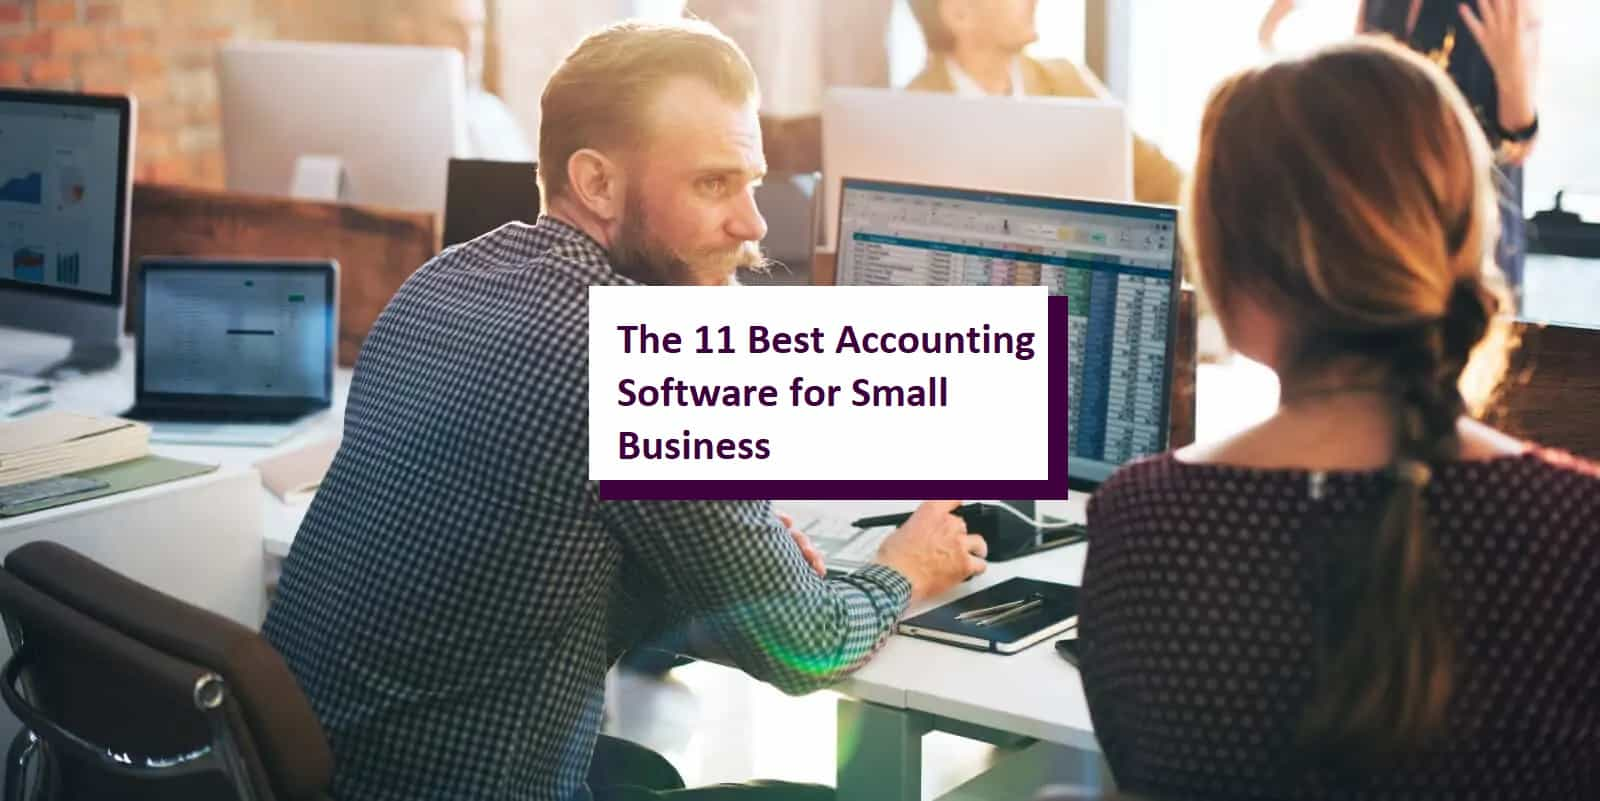 The 11 Best Accounting Software for Small Business